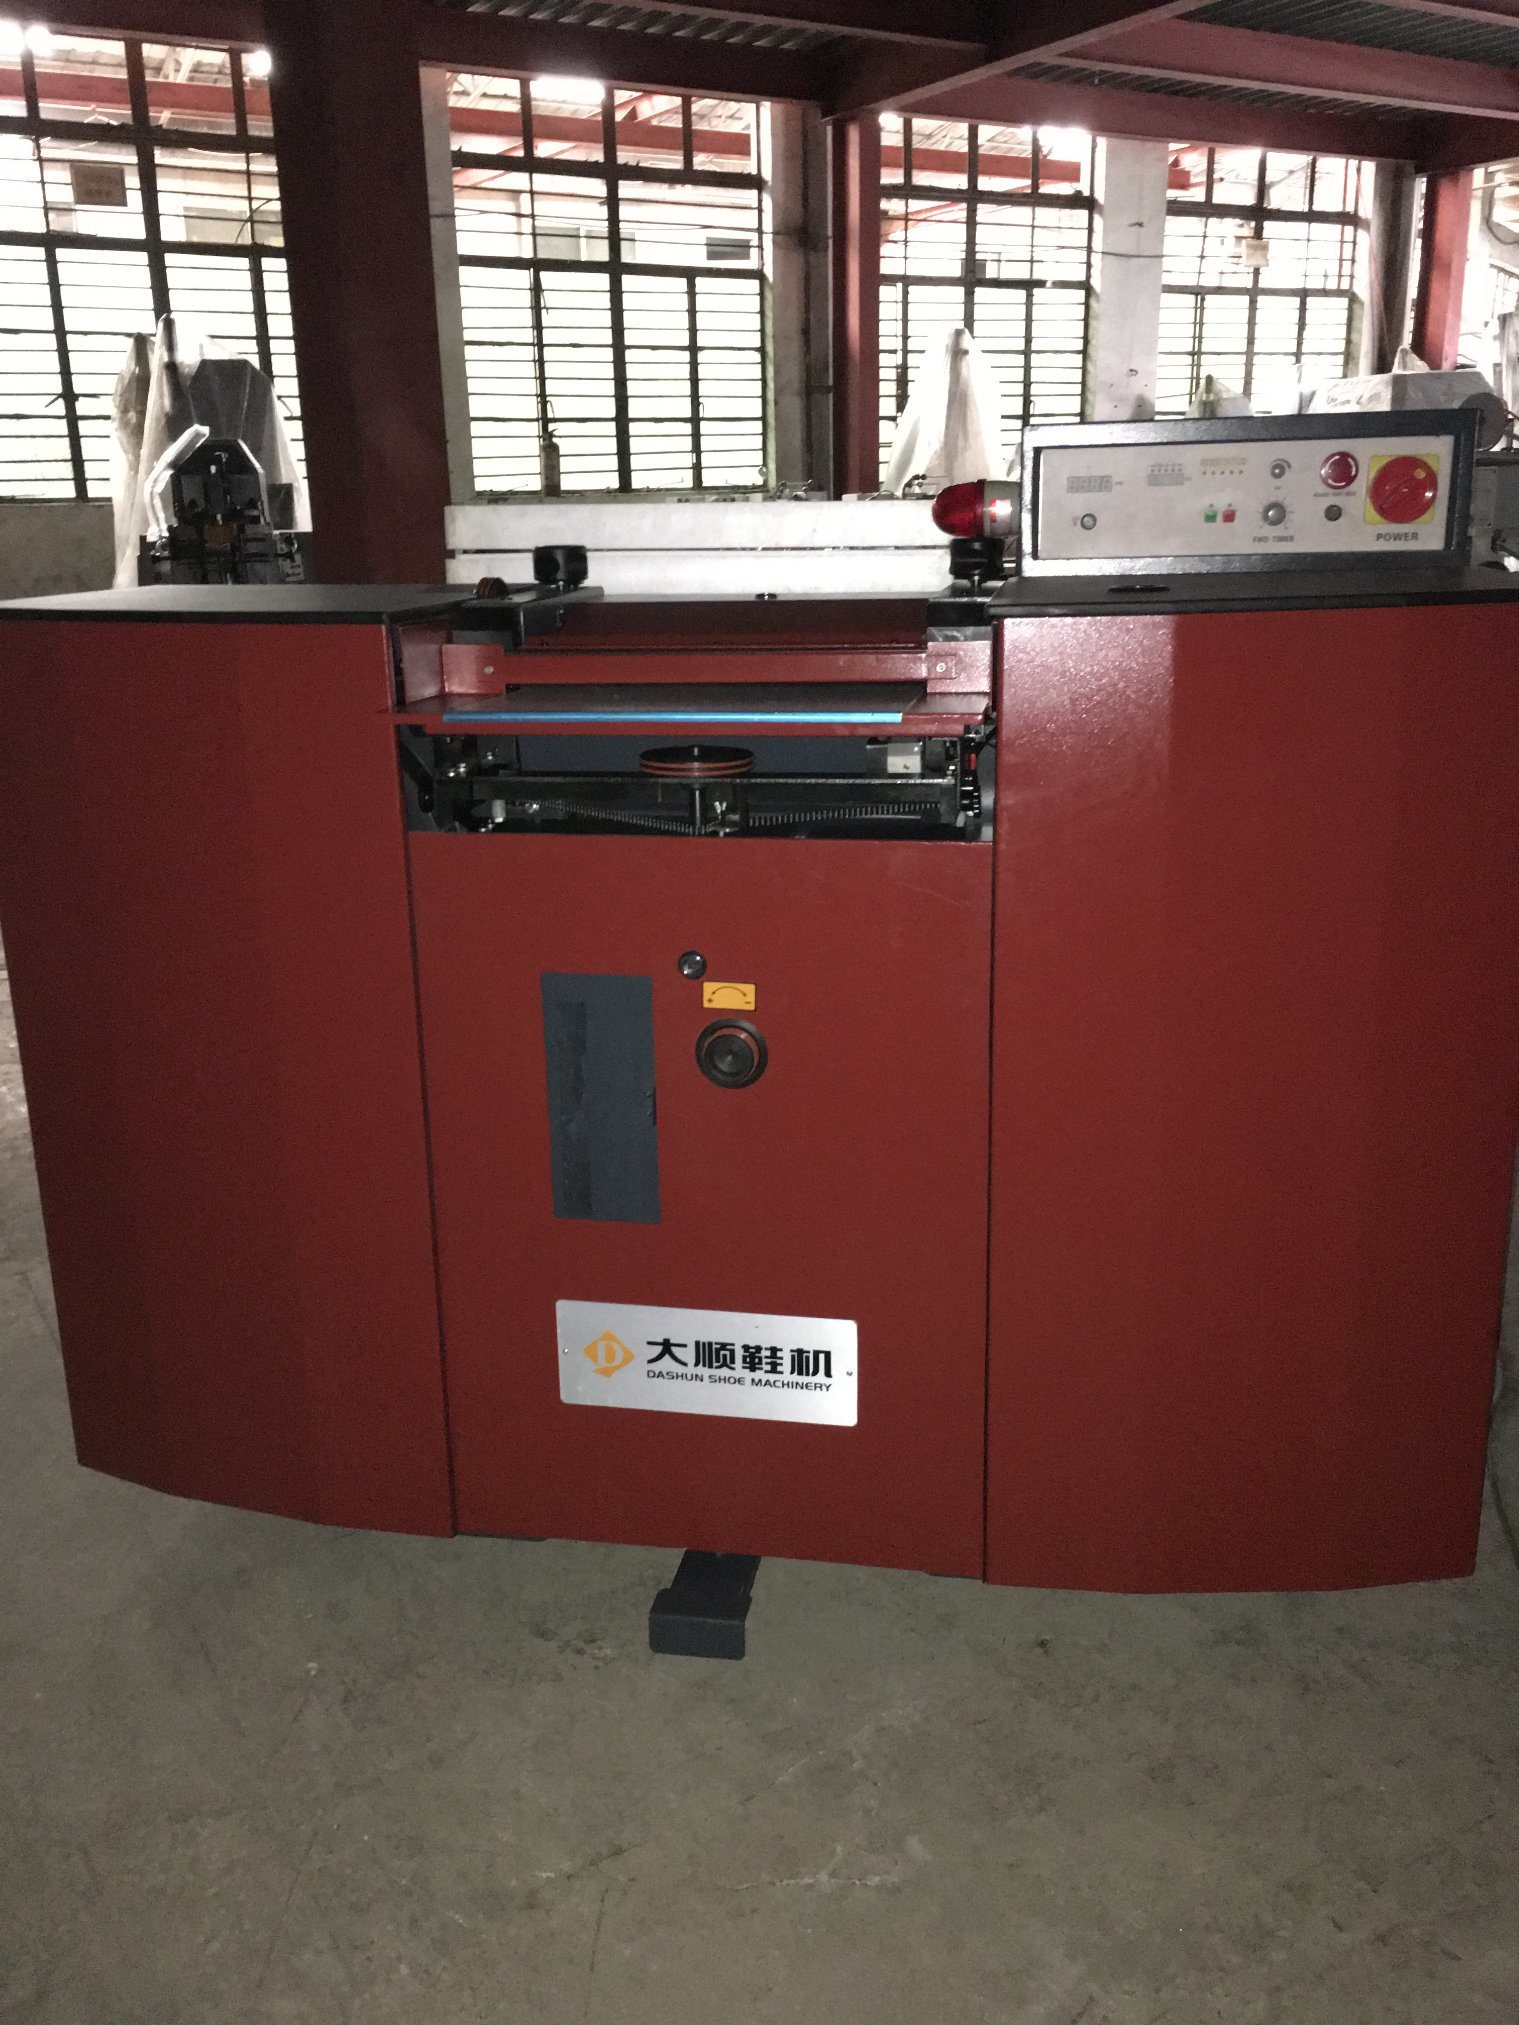 Ds-818-420 Band Knife Splitting Machine for Shoe